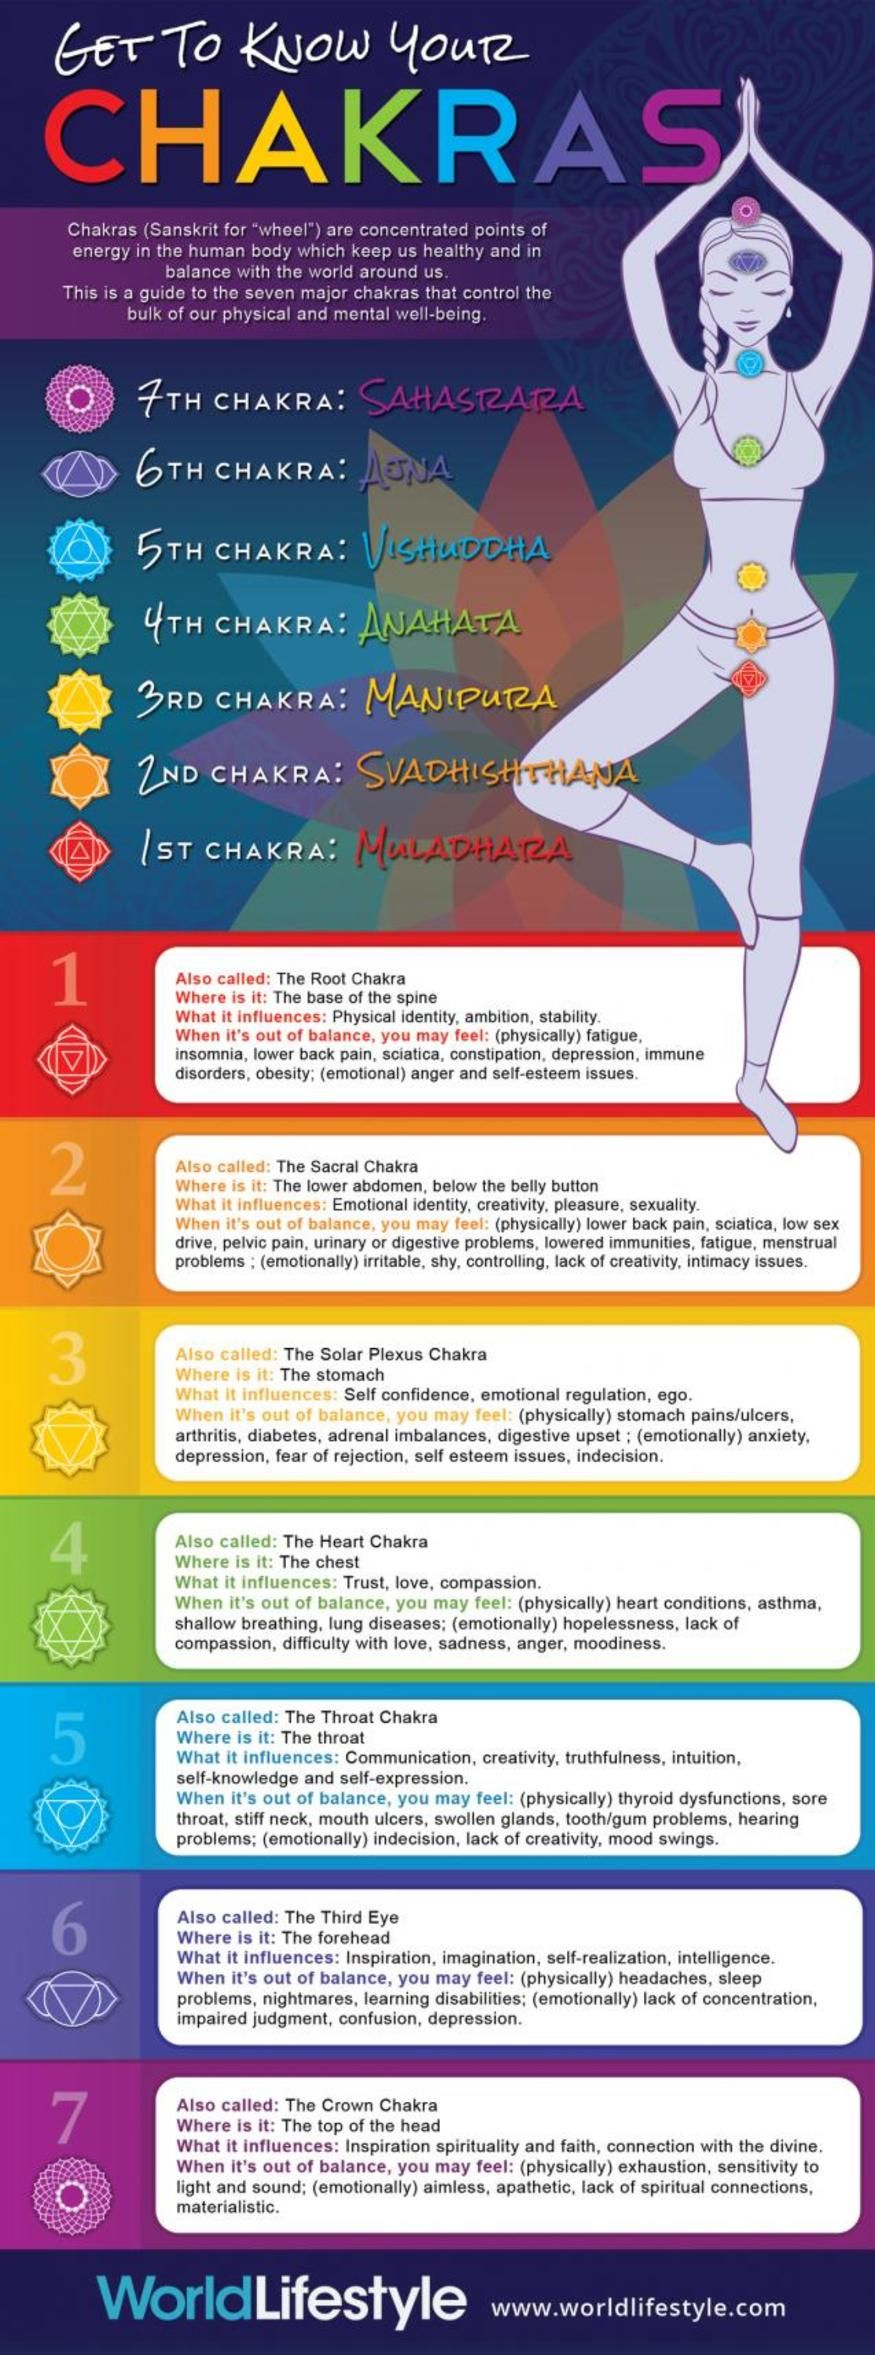 getting-to-know-chakras-infographic-01052015-.jpg (875×2355)